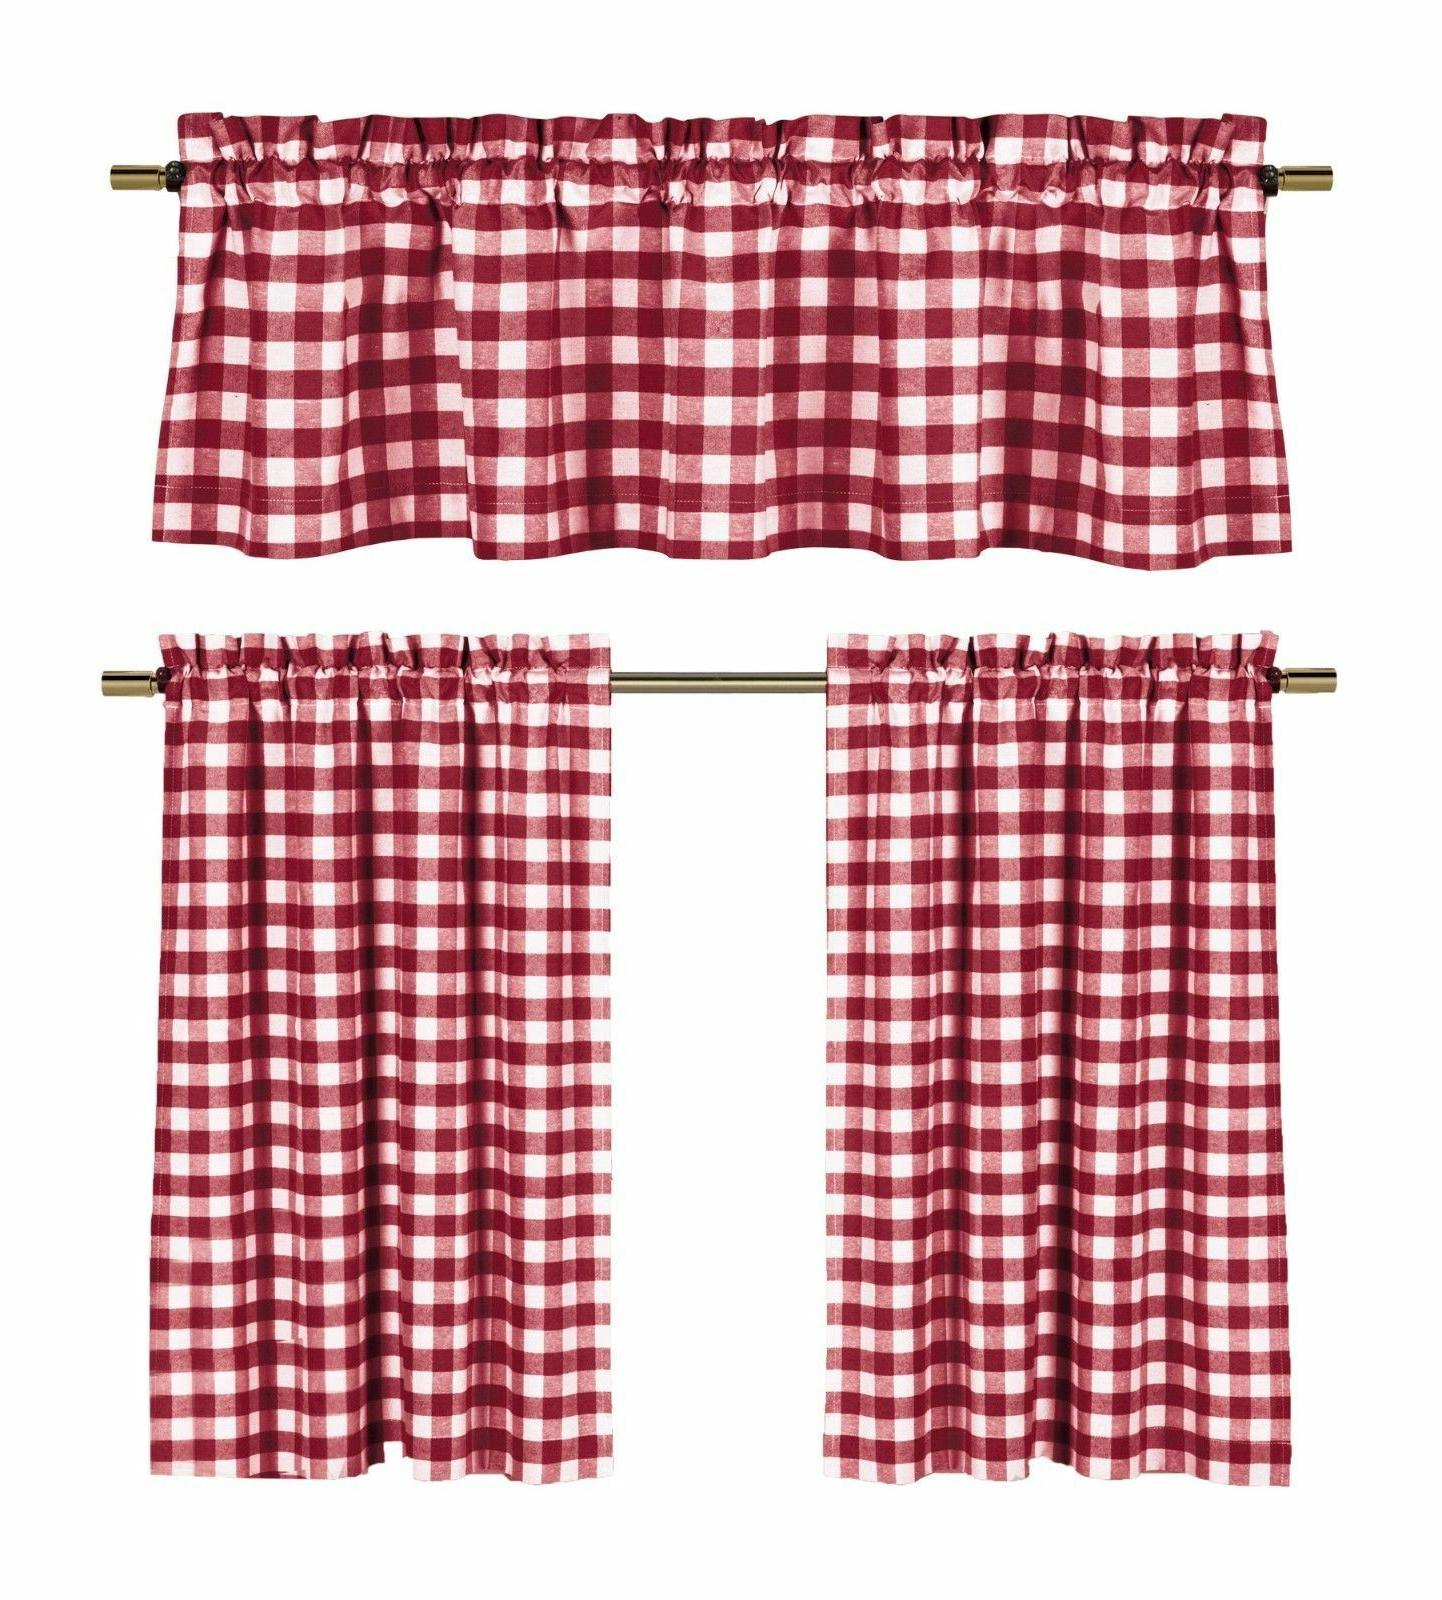 candy apple red and white country checkered